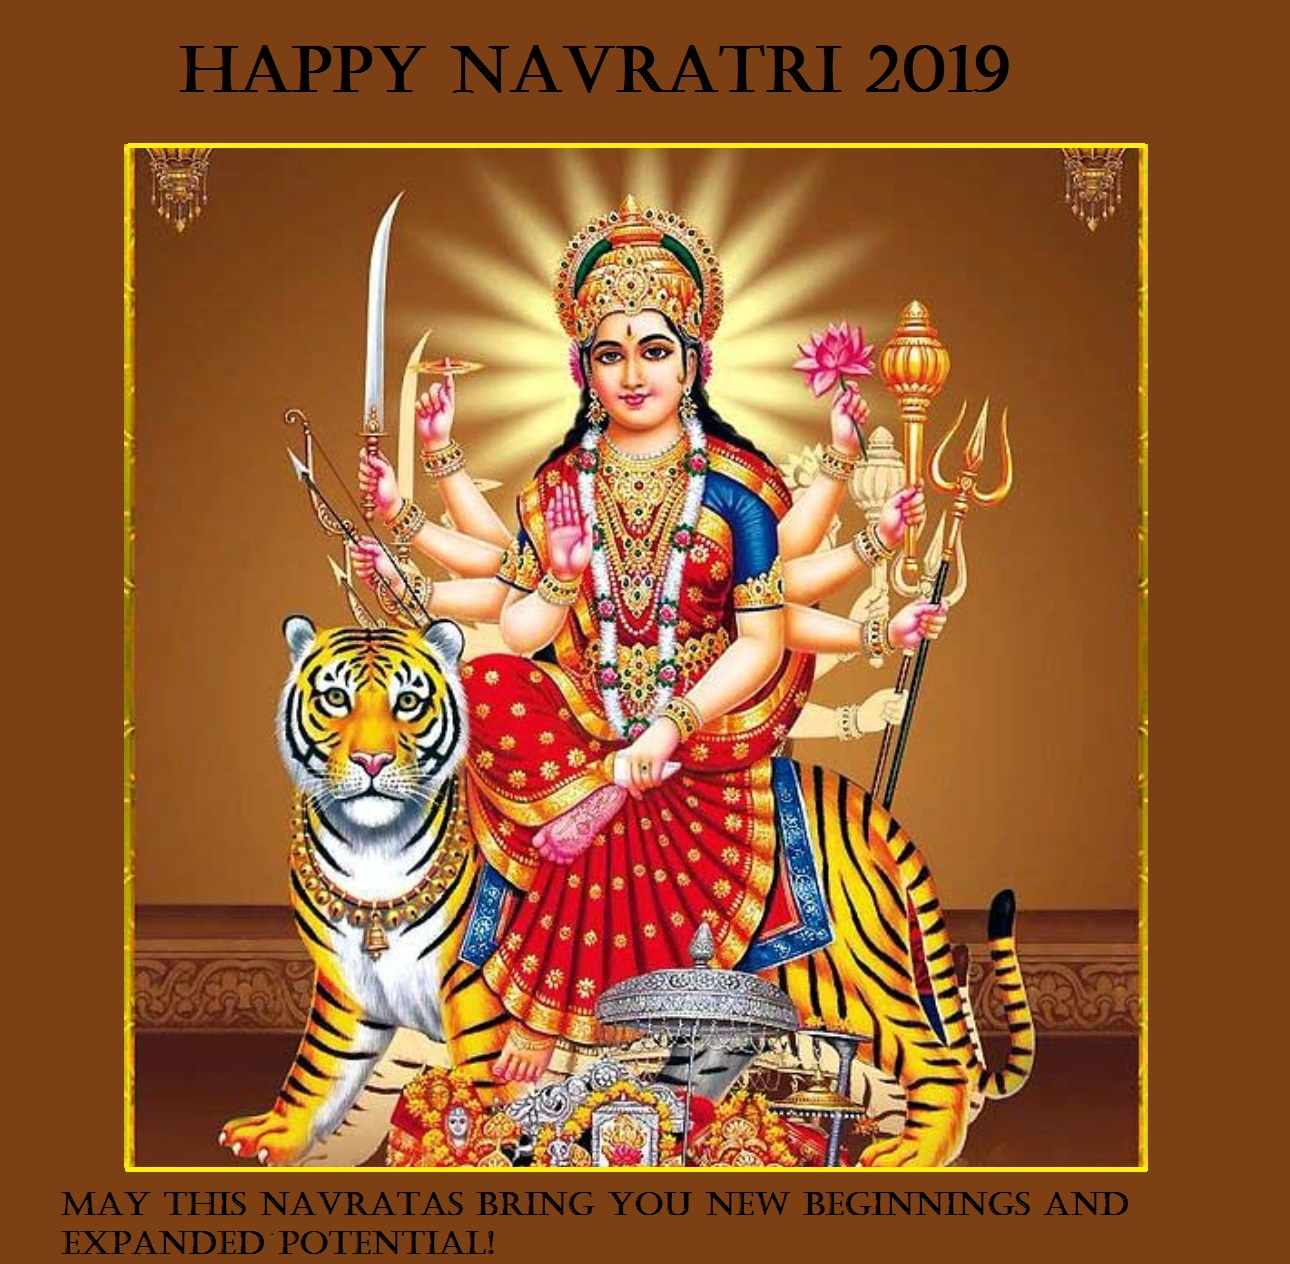 Best Happy Navratri 2019 Quotes Images